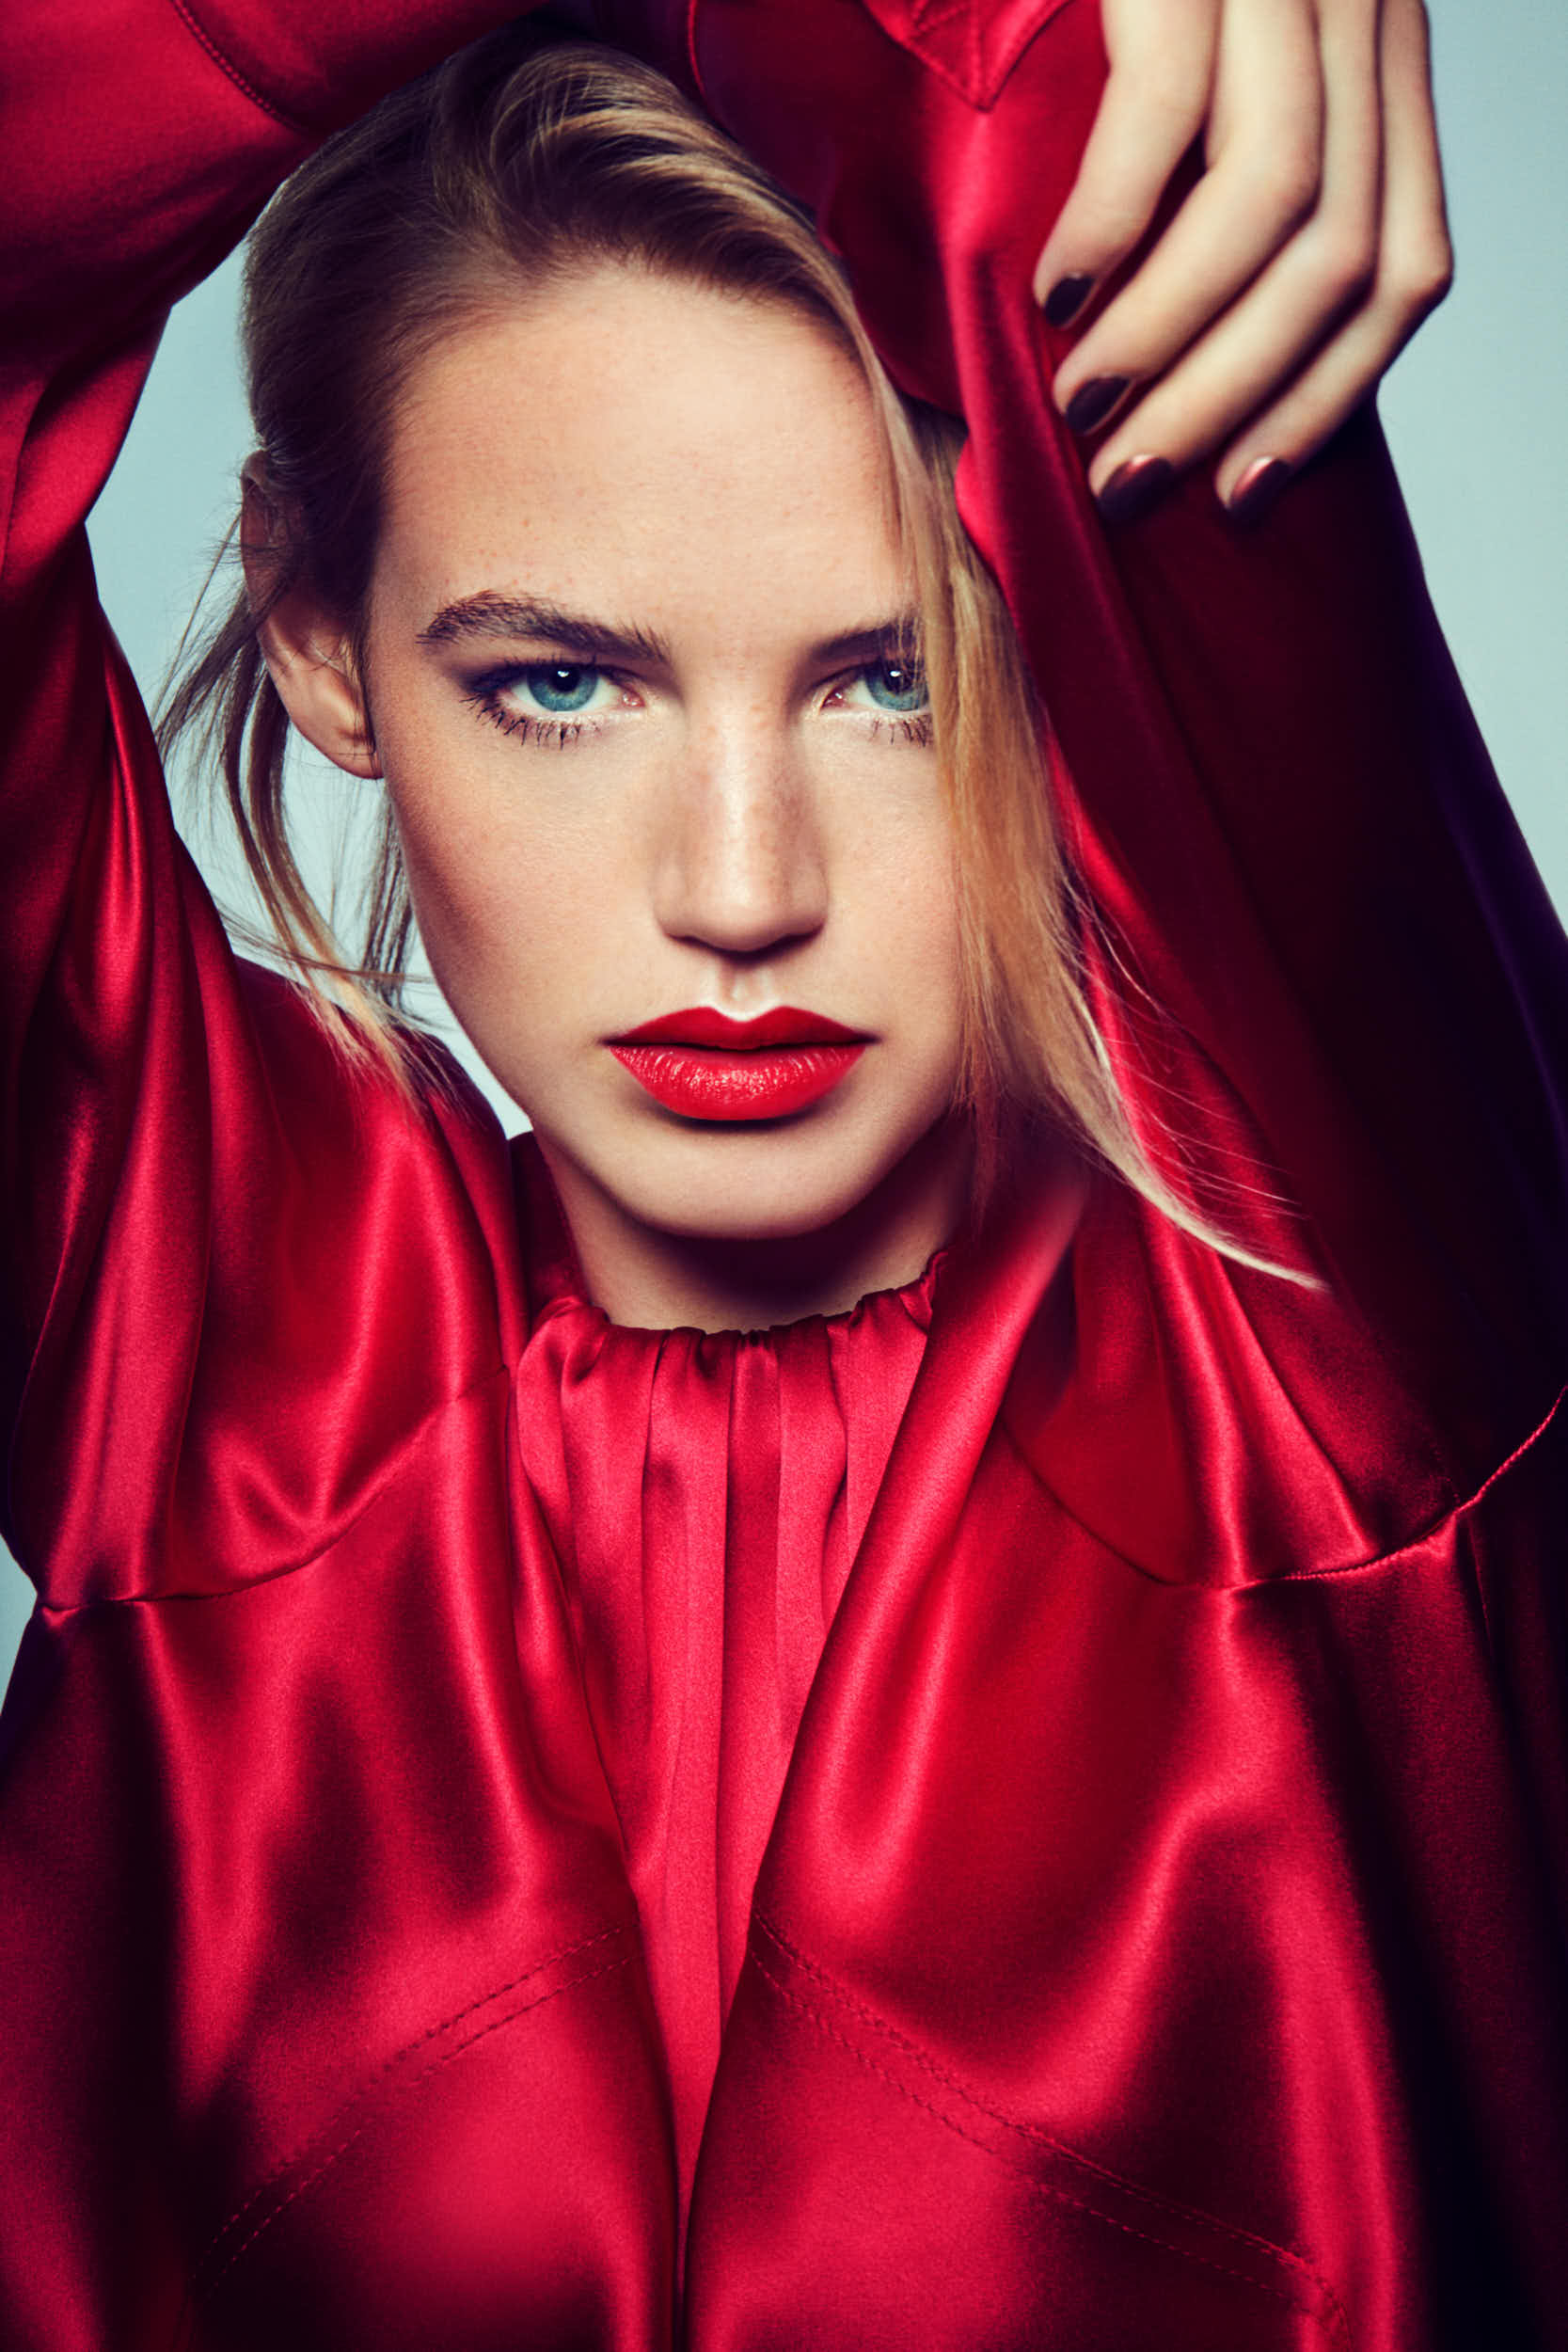 Image_Mag_Lady_In_Red_02